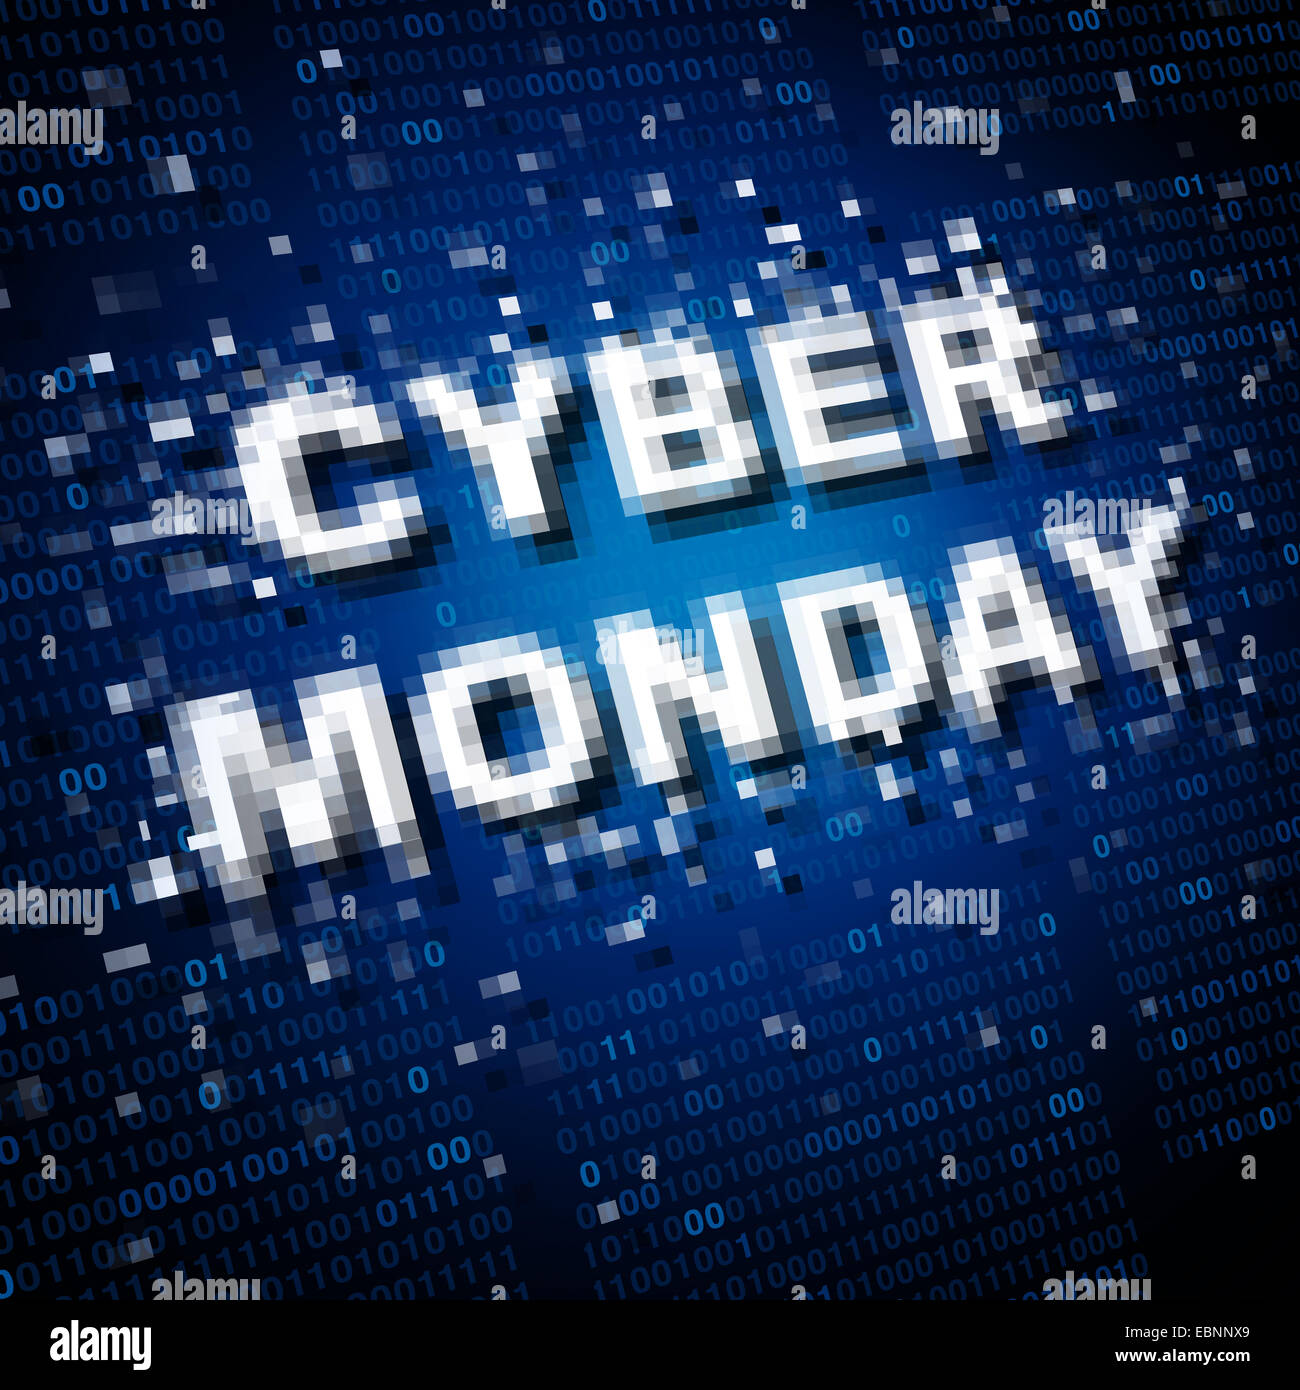 Cyber monday sale icon and marketing symbol as an online advertising sales concept for internet holiday celebrations. - Stock Image